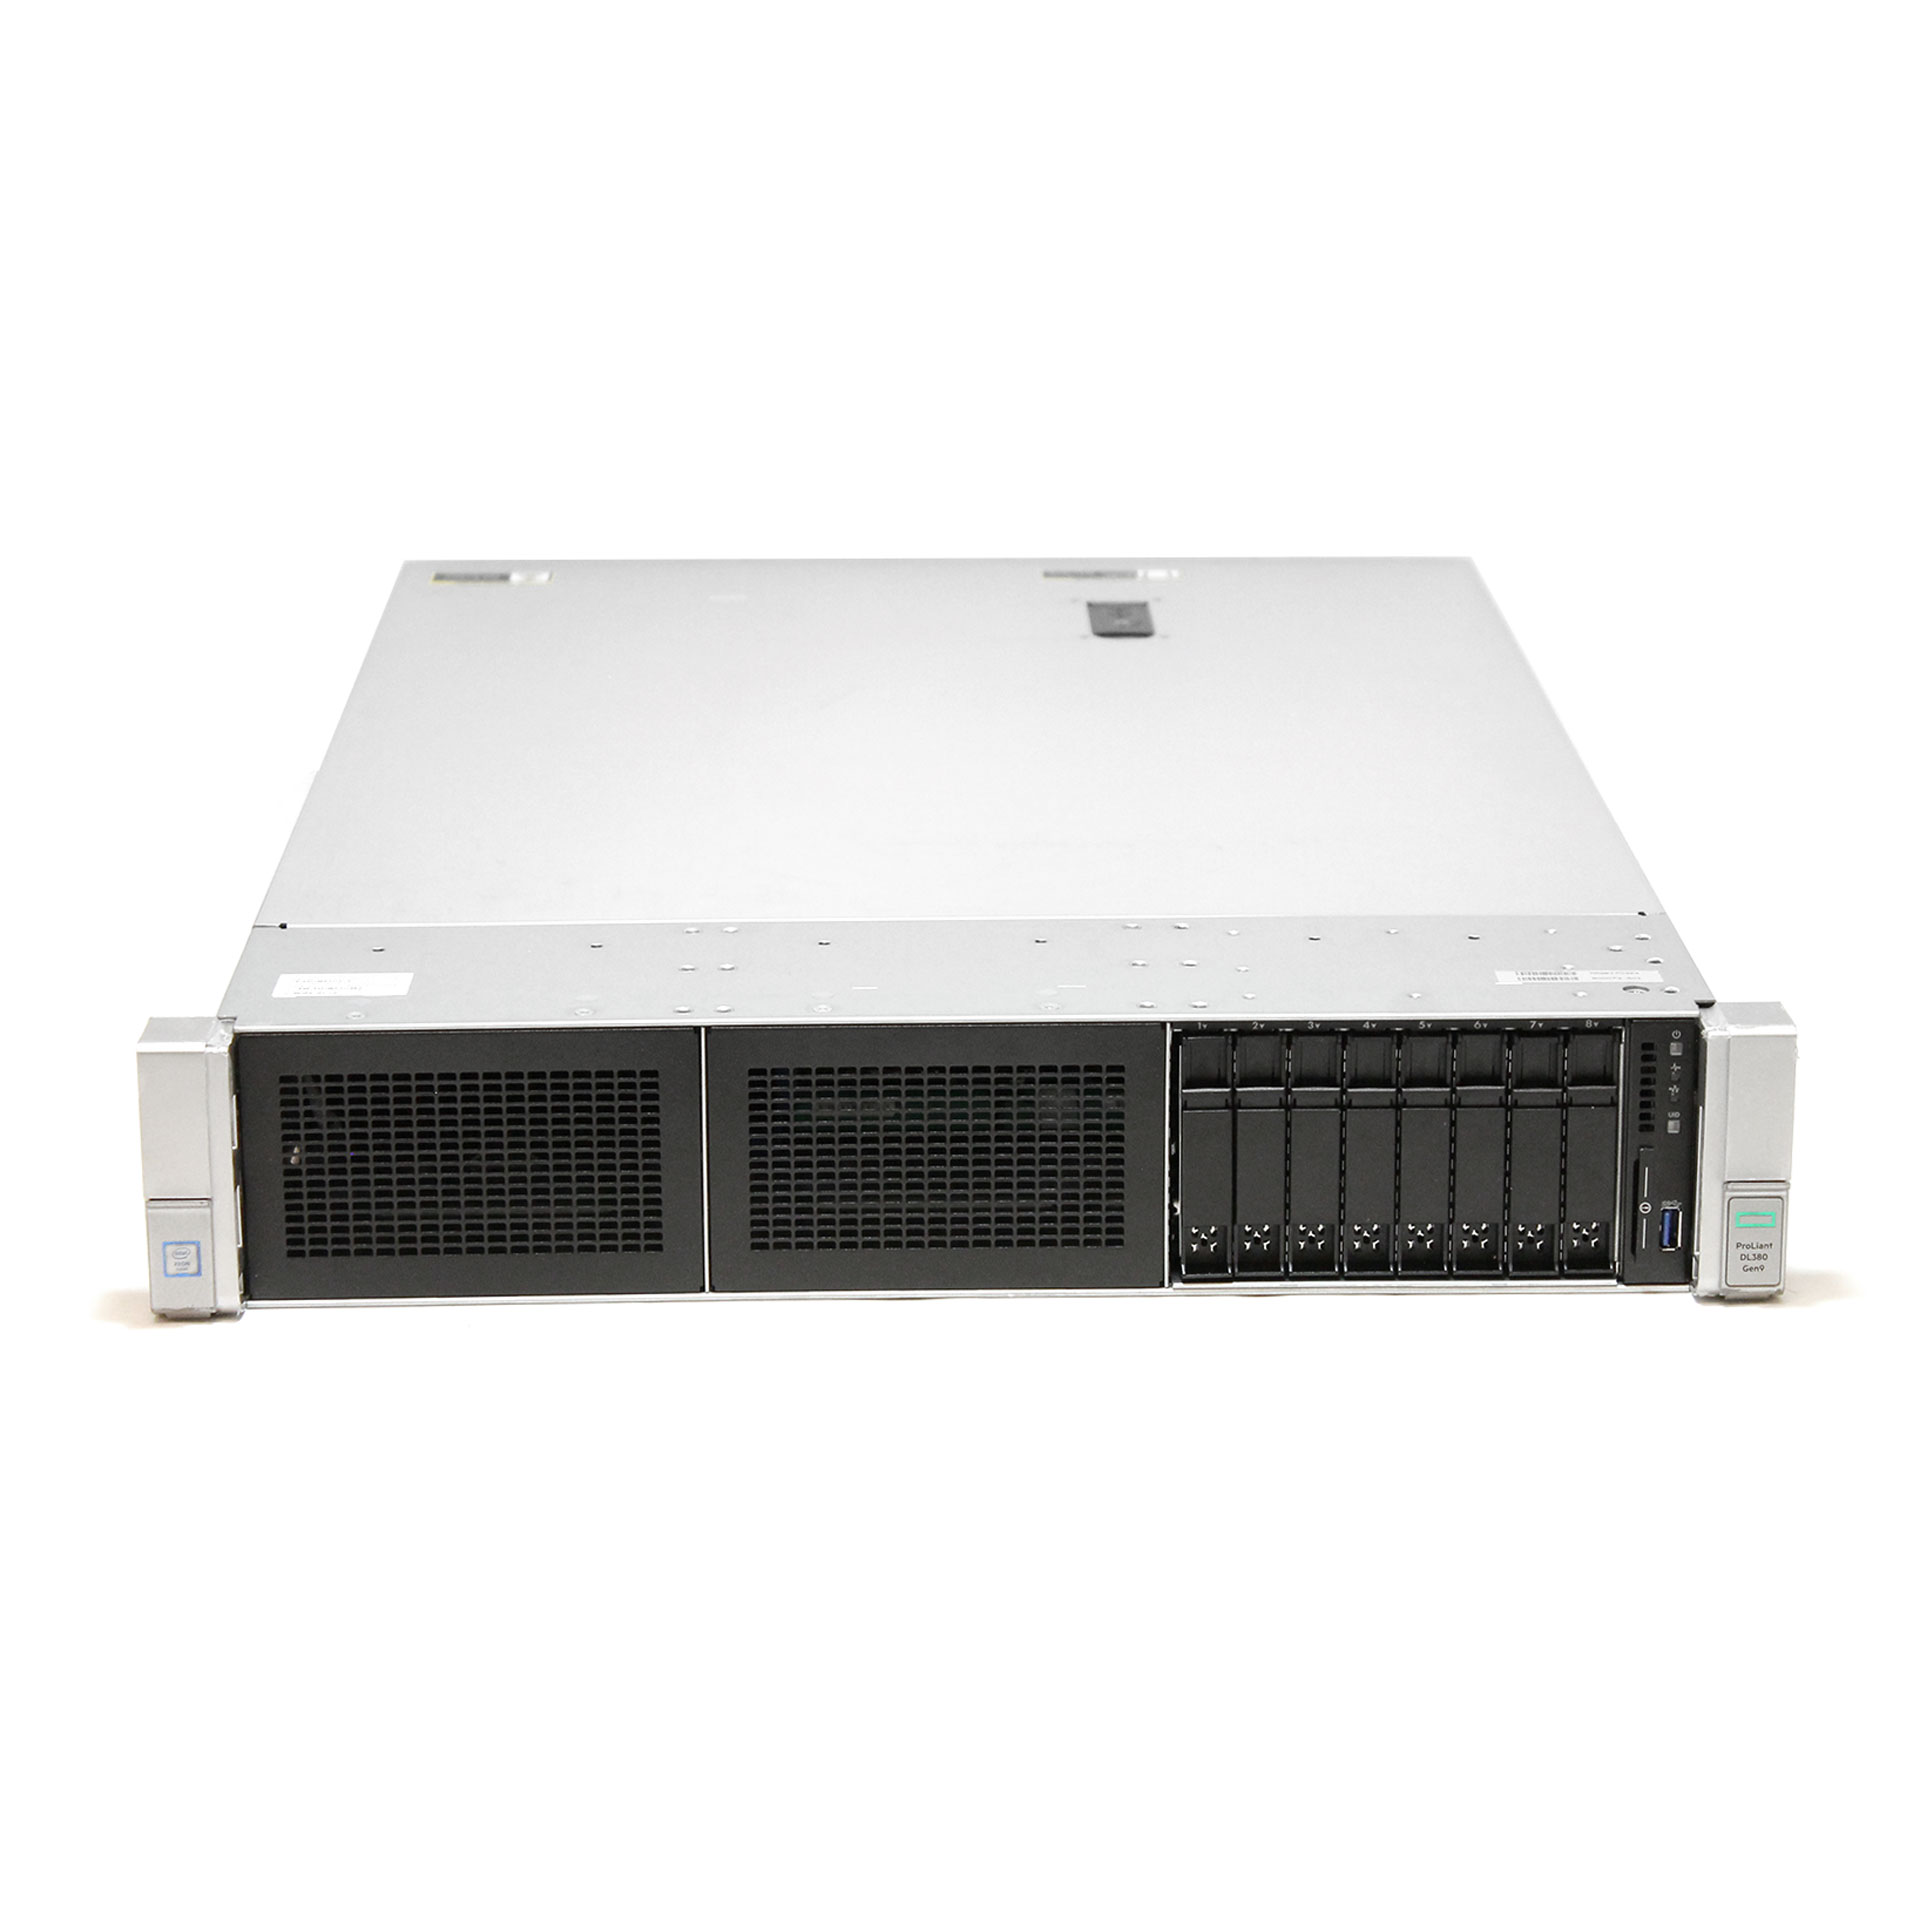 HPE SB ProLiant DL380 Gen9 Xeon E5-2620V3 16 GB 800073-S01